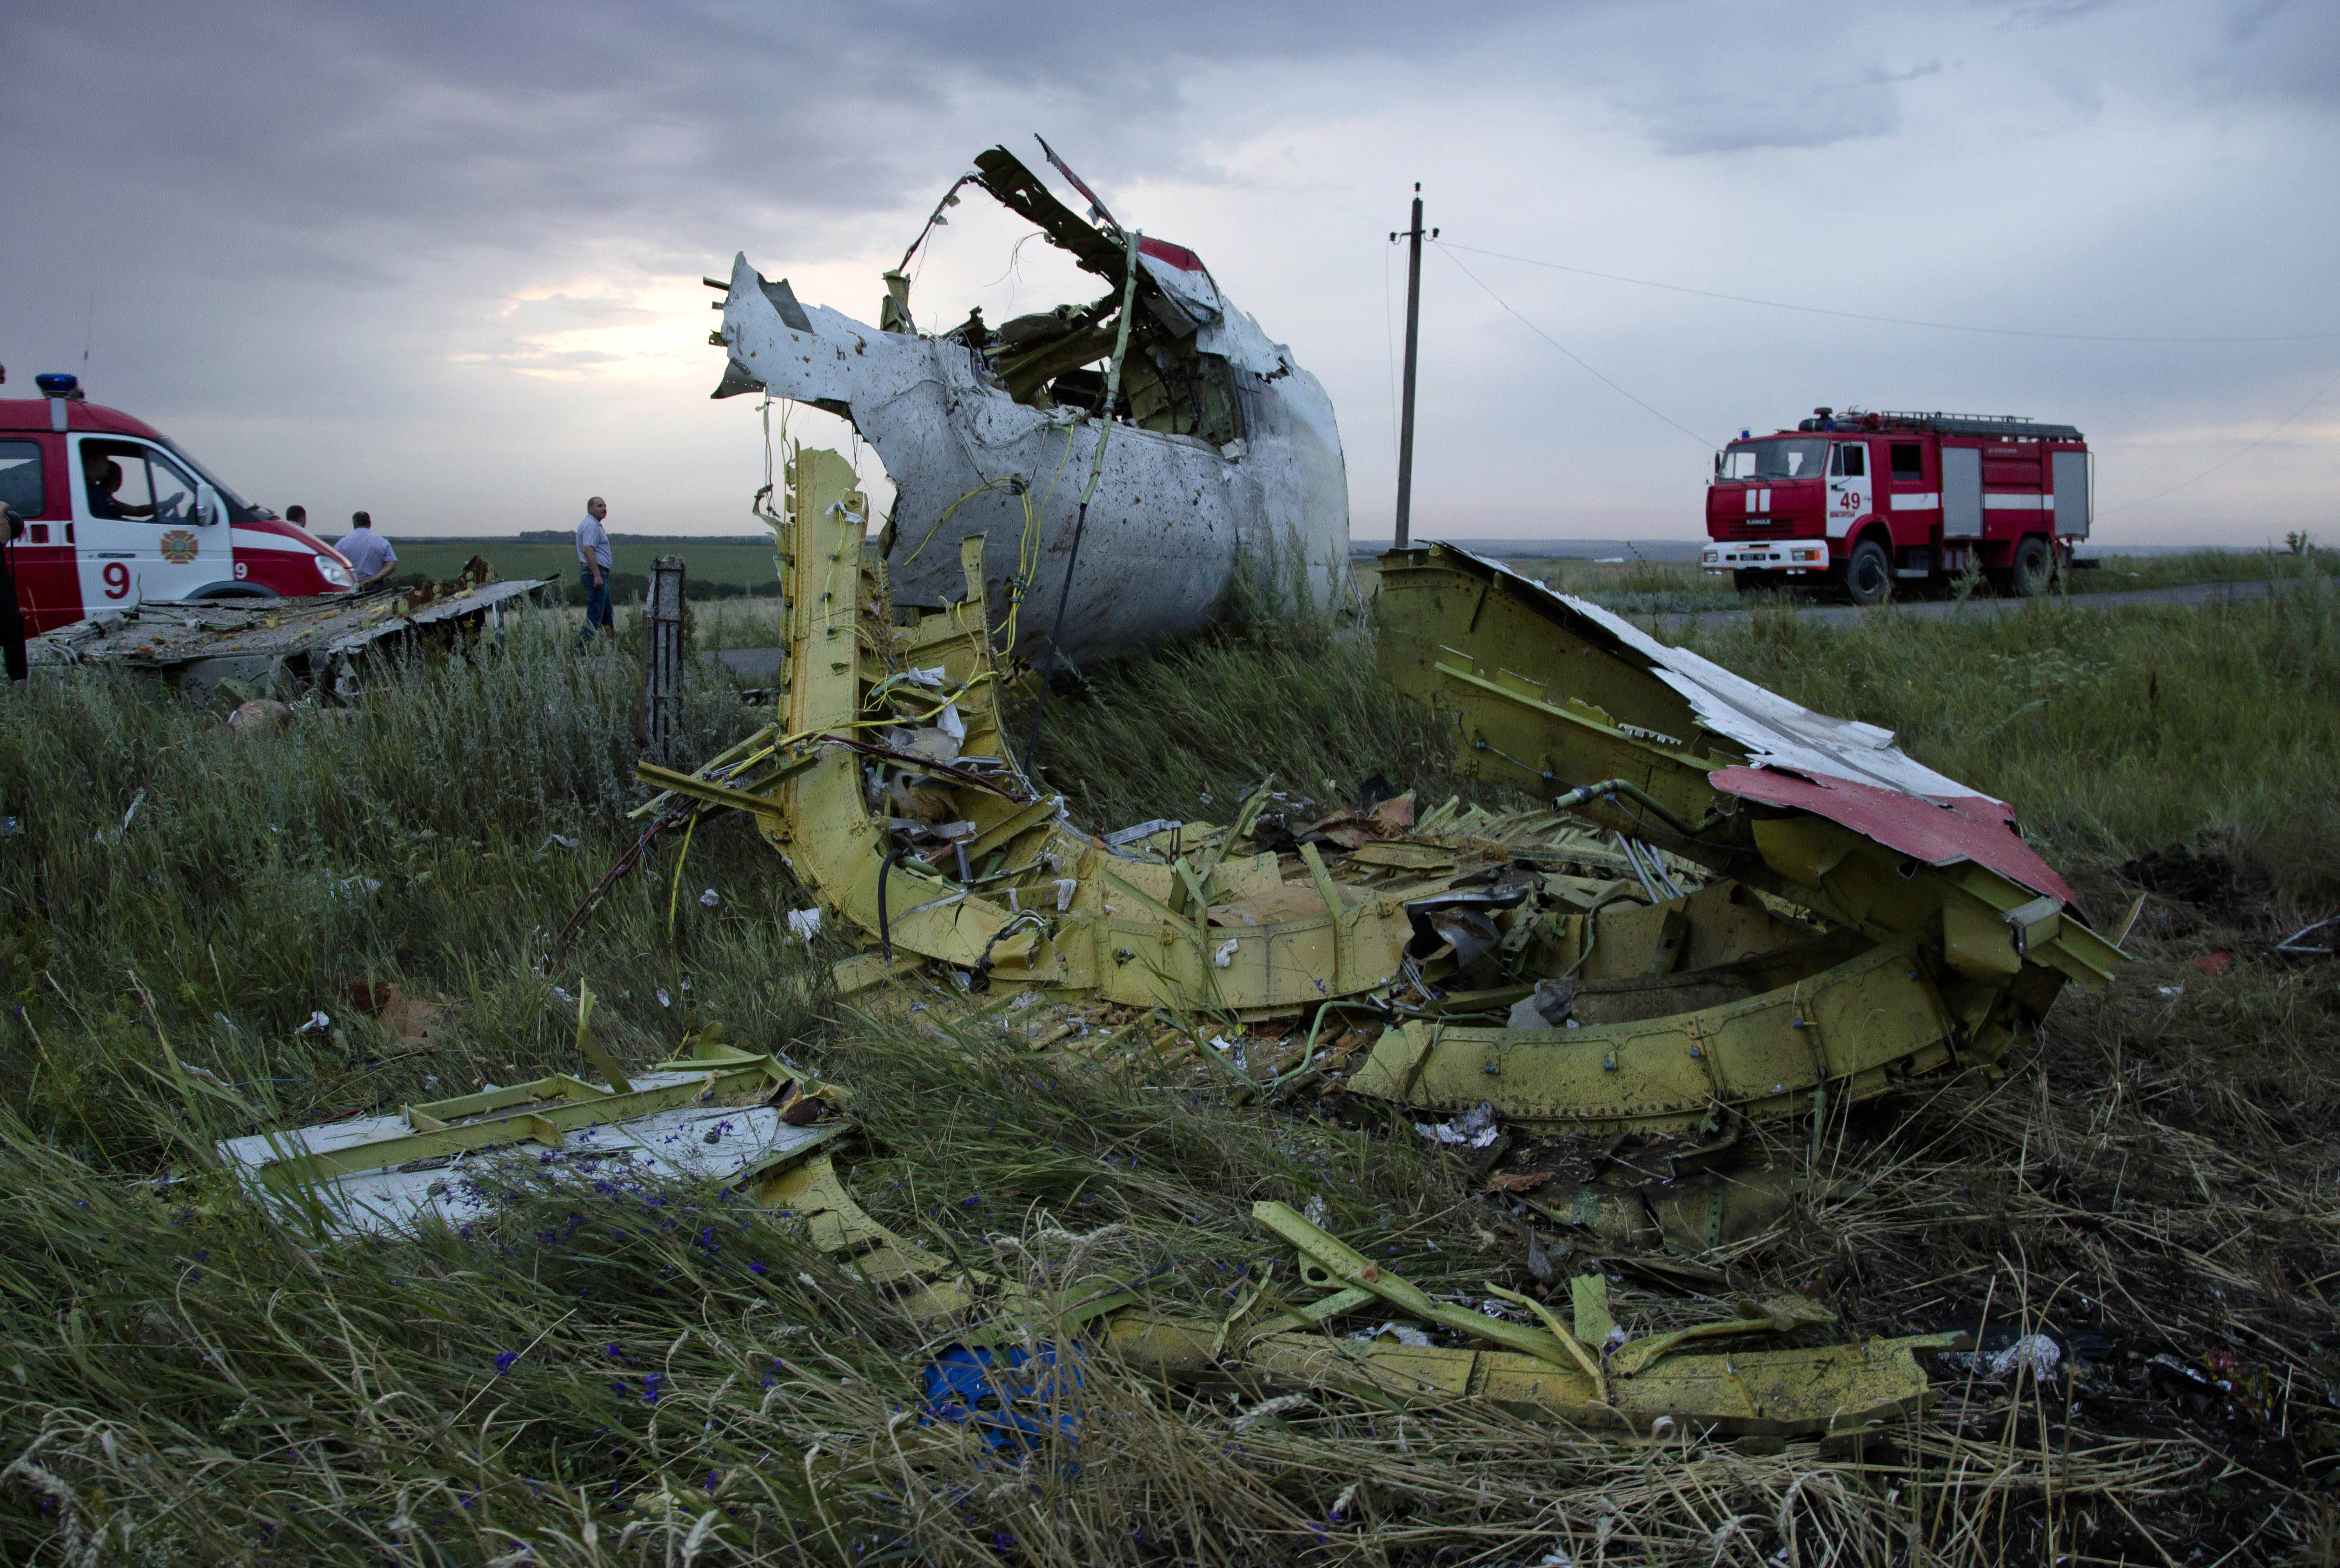 Firefighters arrive at the crash site July 17 of a passenger plane near the village of Hrabove, Ukraine. All 298 people aboard the Malaysia Airlines Flight 17 traveling from Amsterdam to Kuala Lumpur were killed.